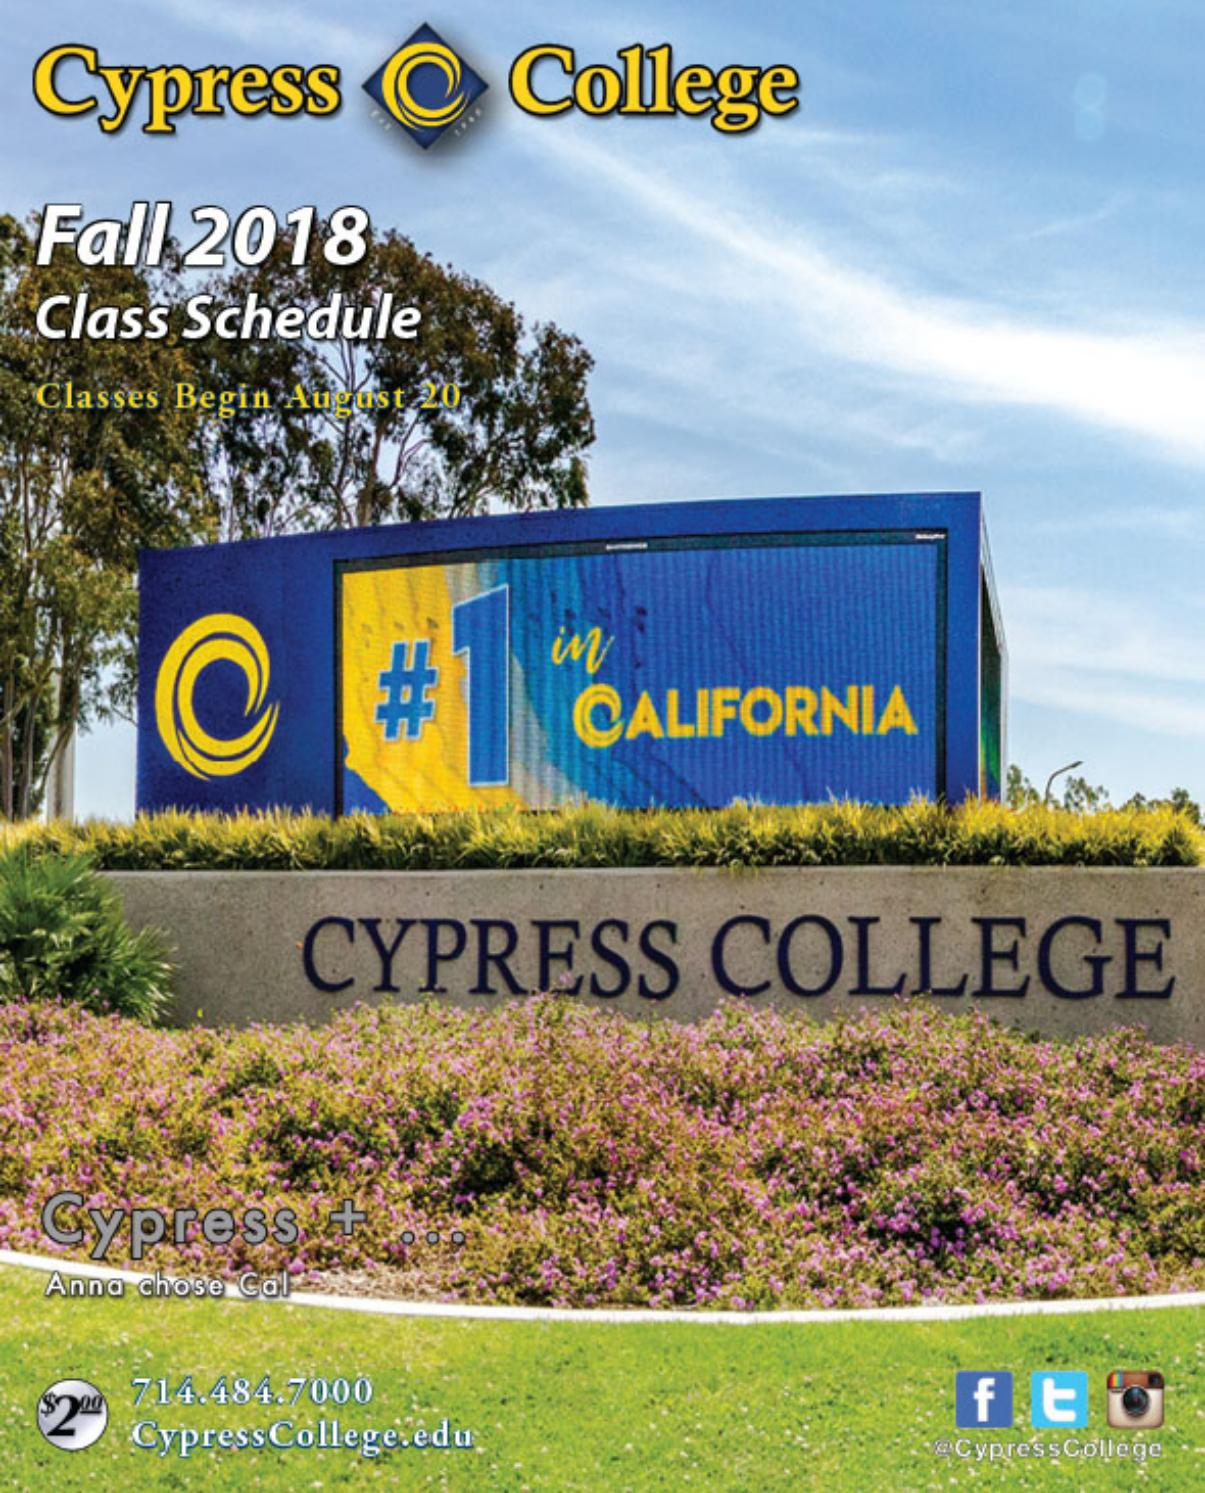 Cypress College Fall 2018 Class Schedule by Cypress College - issuu